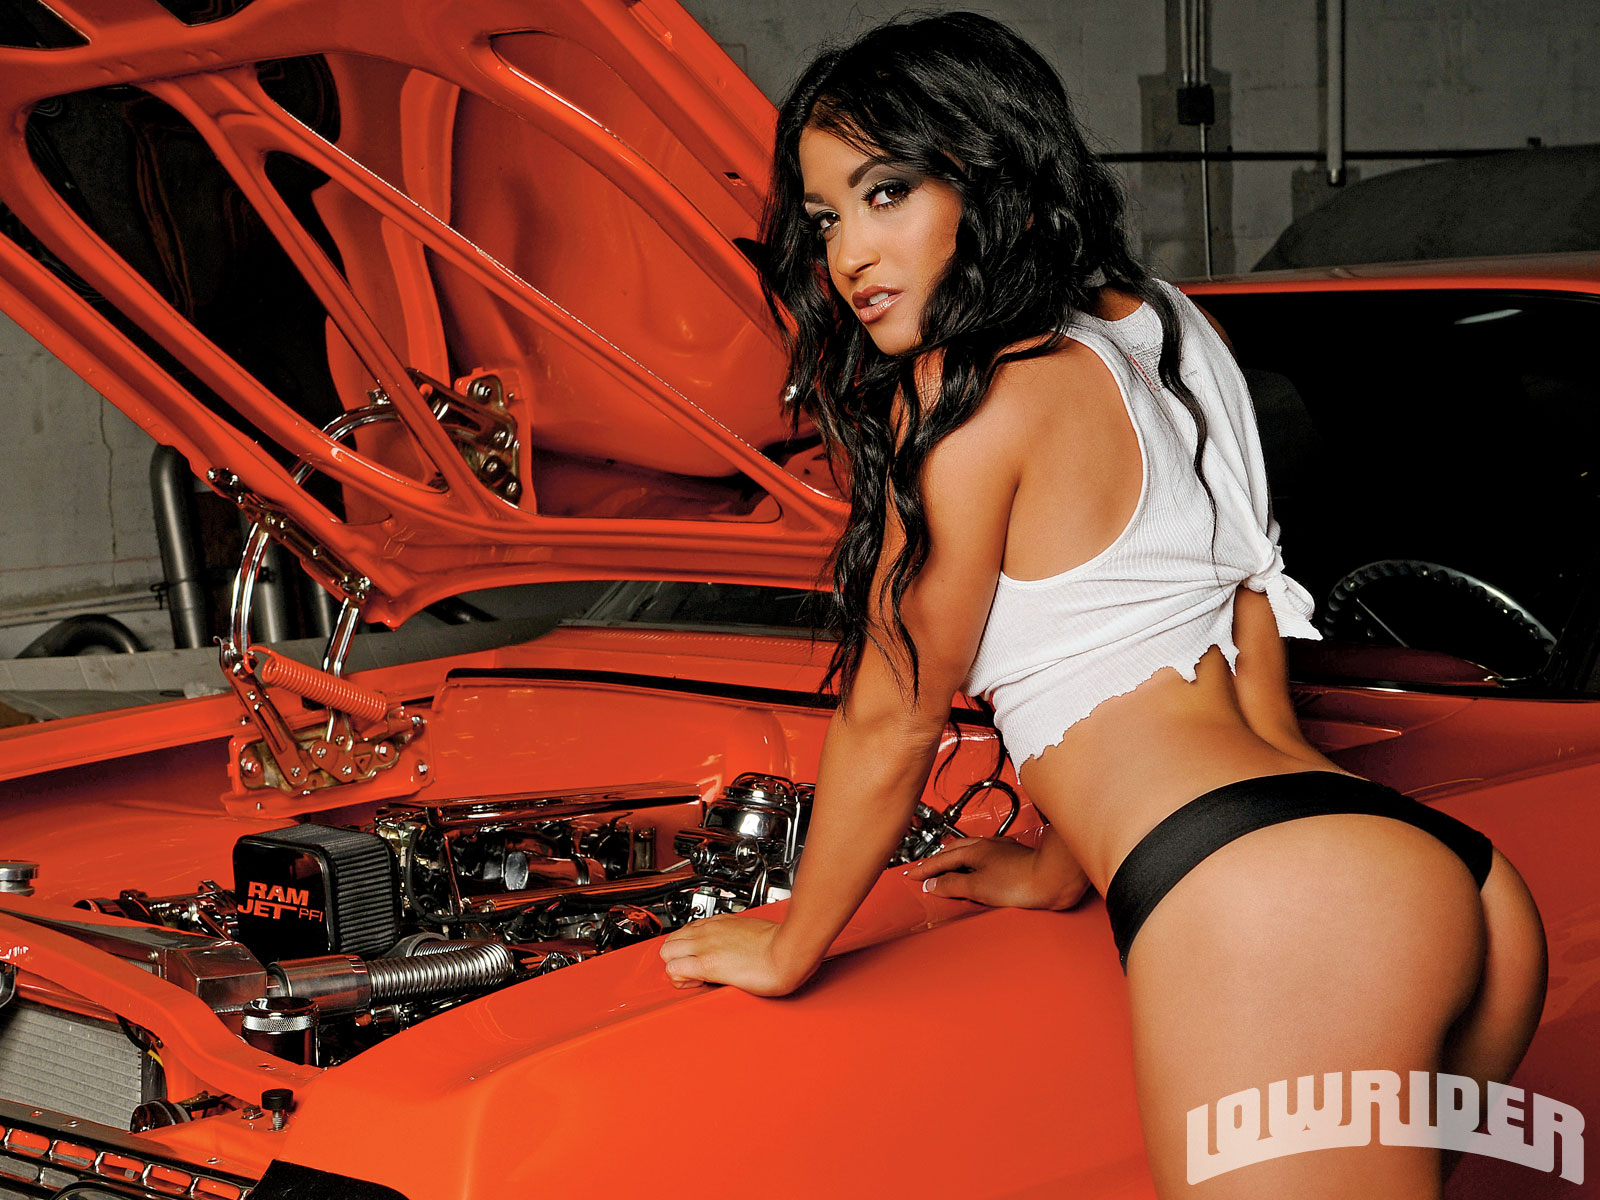 lowrider girls are nude and with big as